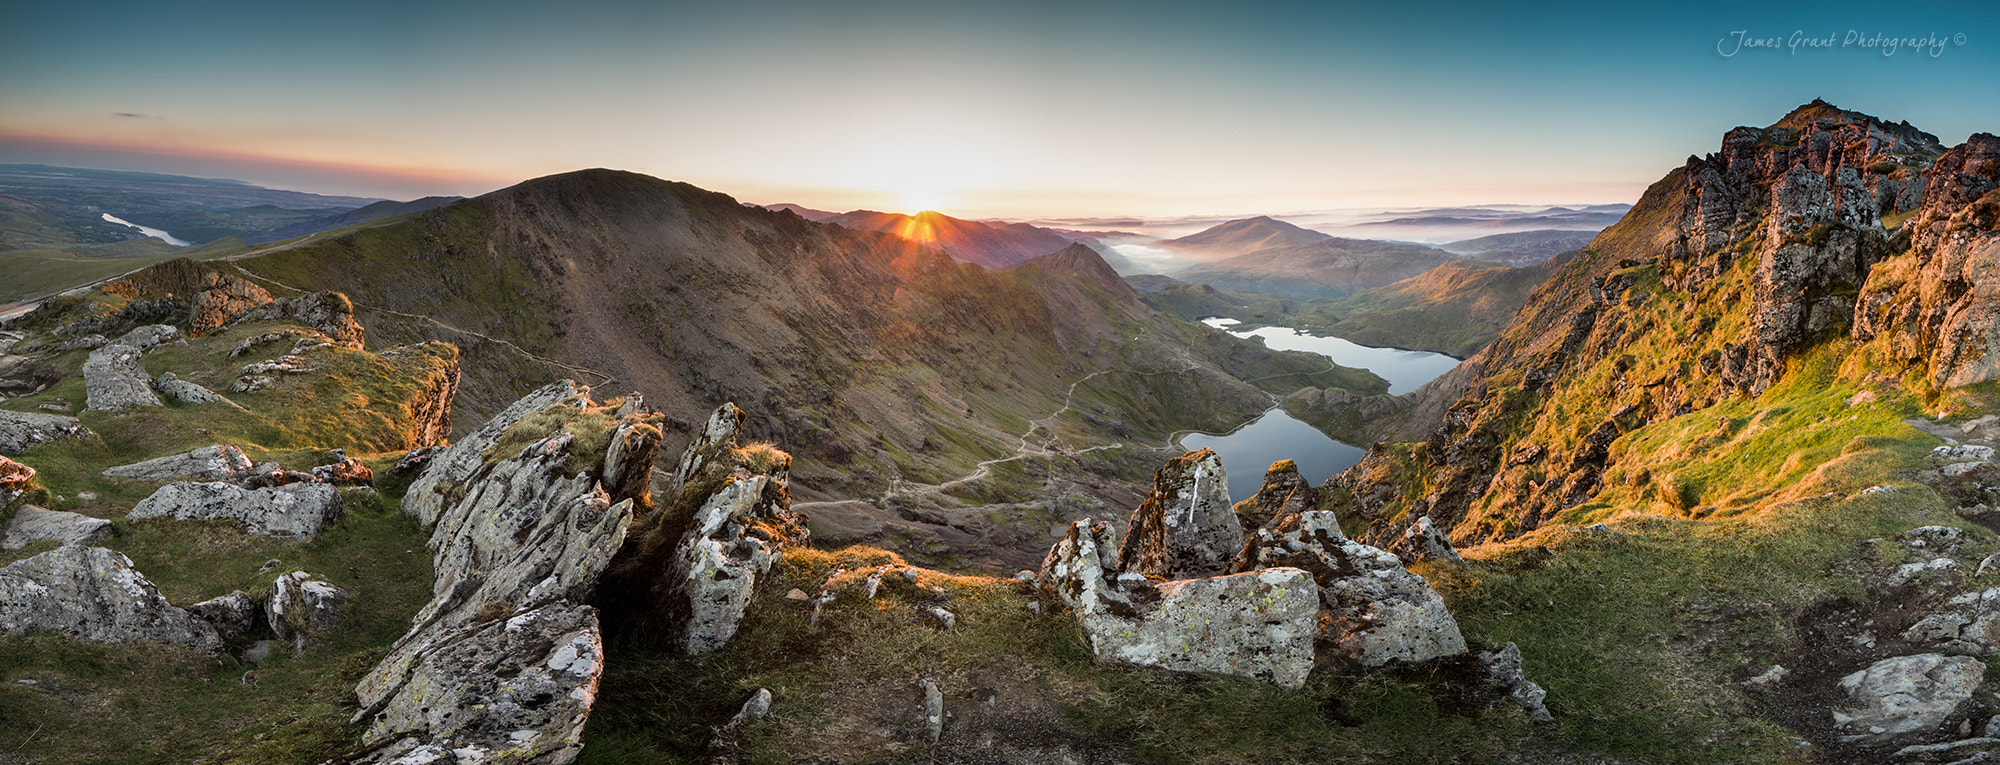 Photograph Snowdon Horseshoe by James Grant on 500px